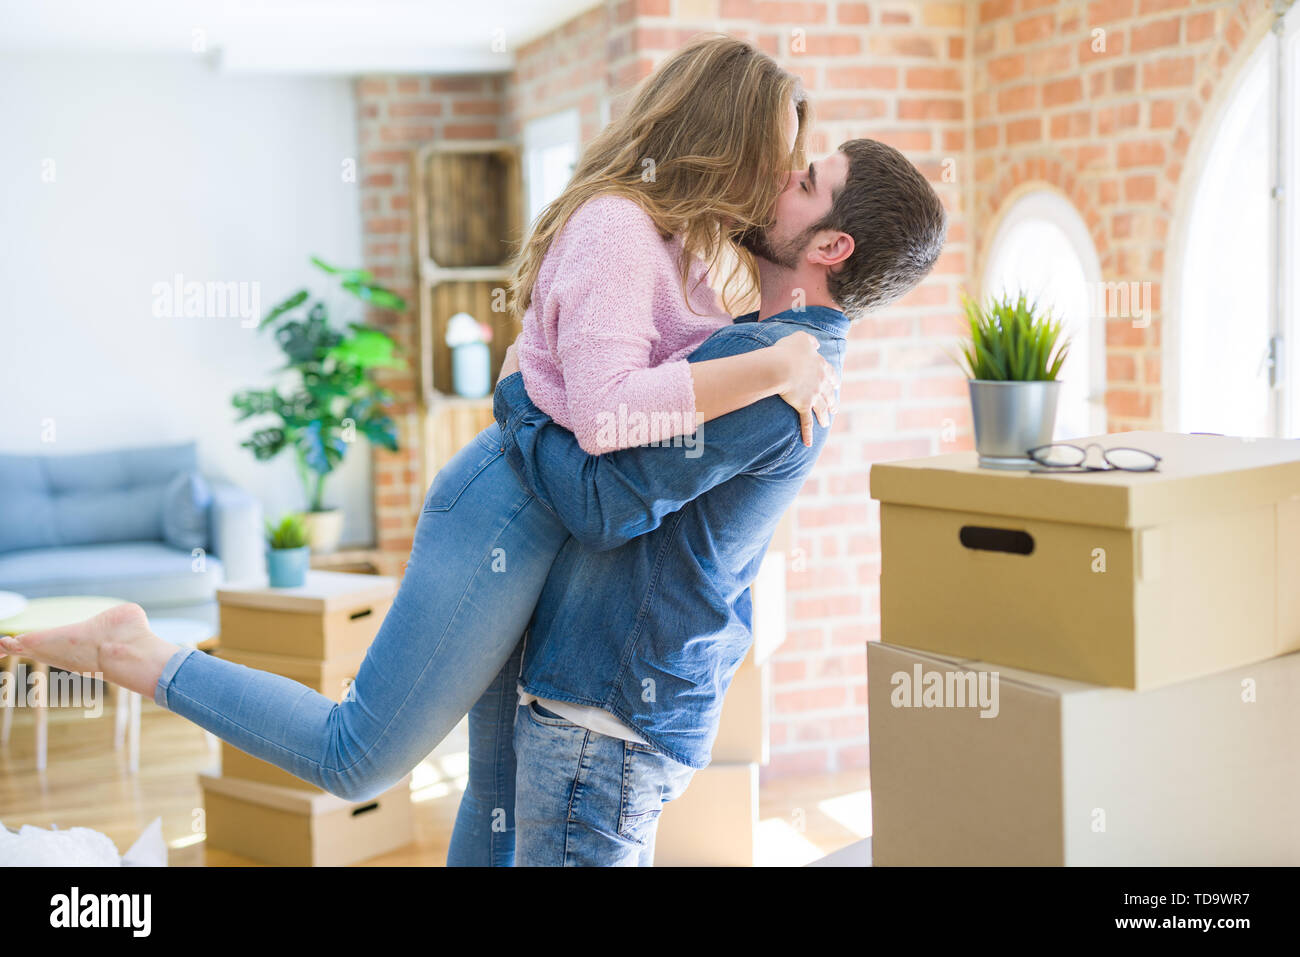 Young beautiful couple in love celebrating moving to a new home around cardboard boxes - Stock Image